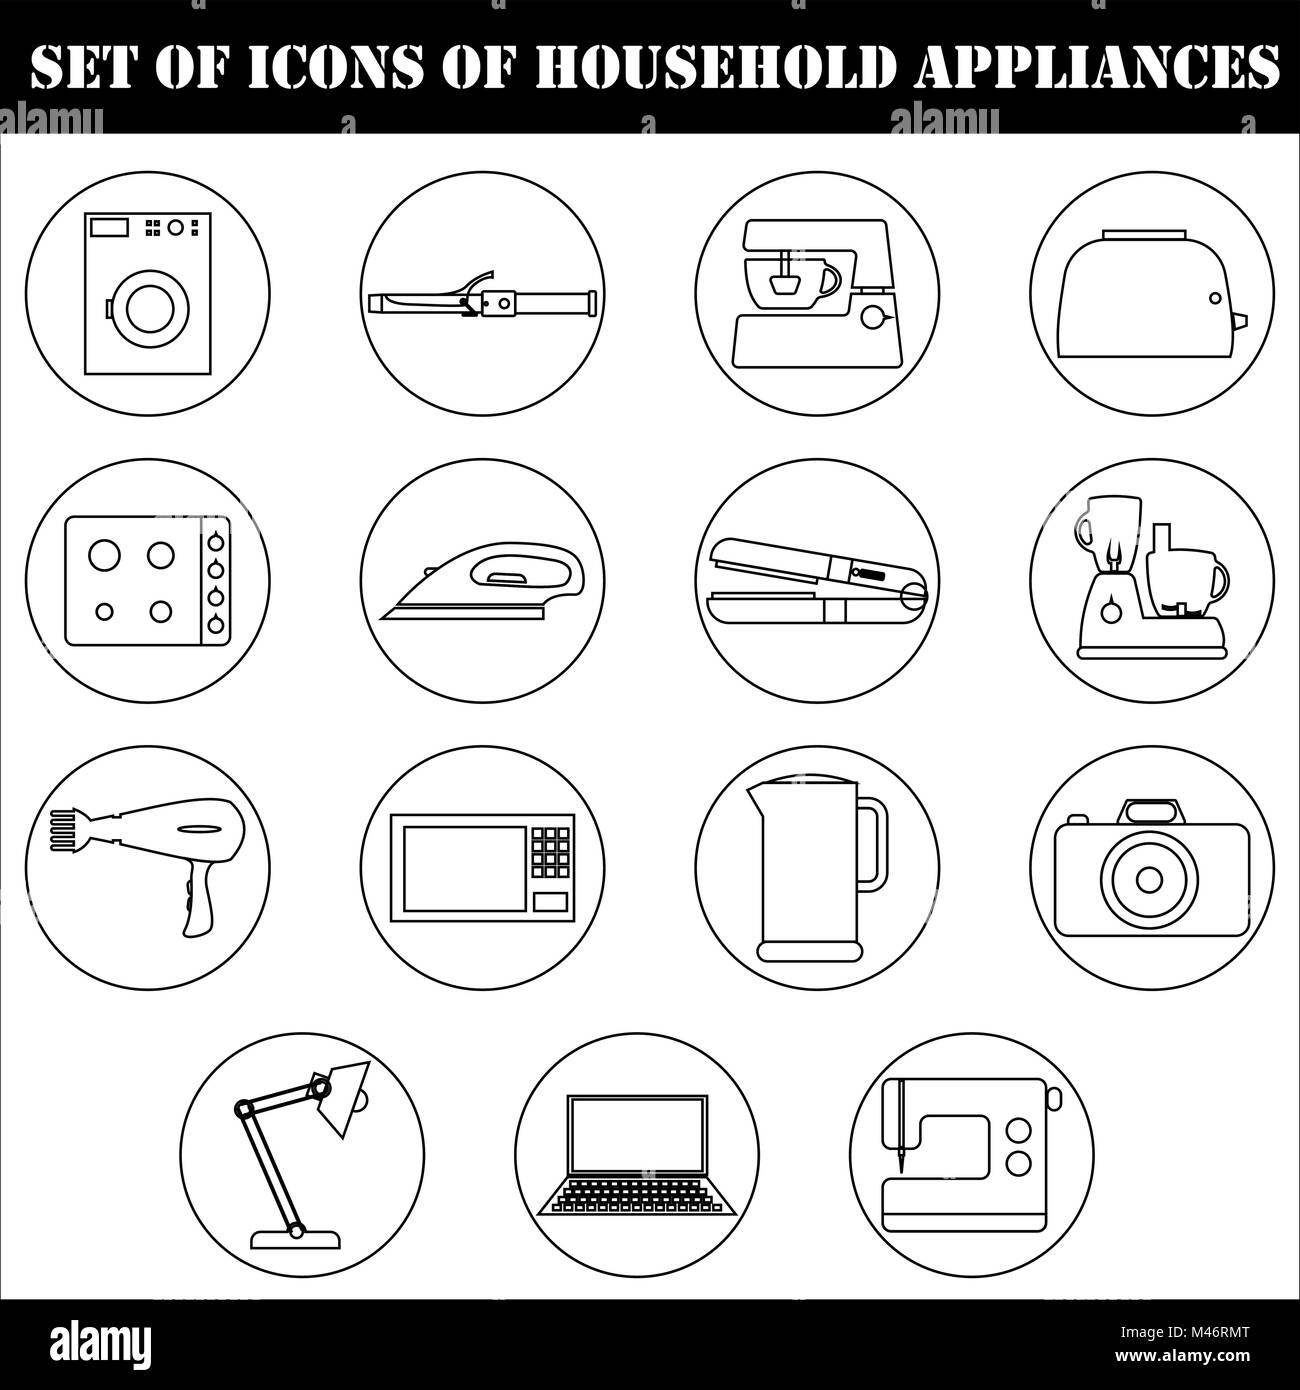 A set of icons of household electric household appliances - Stock Image